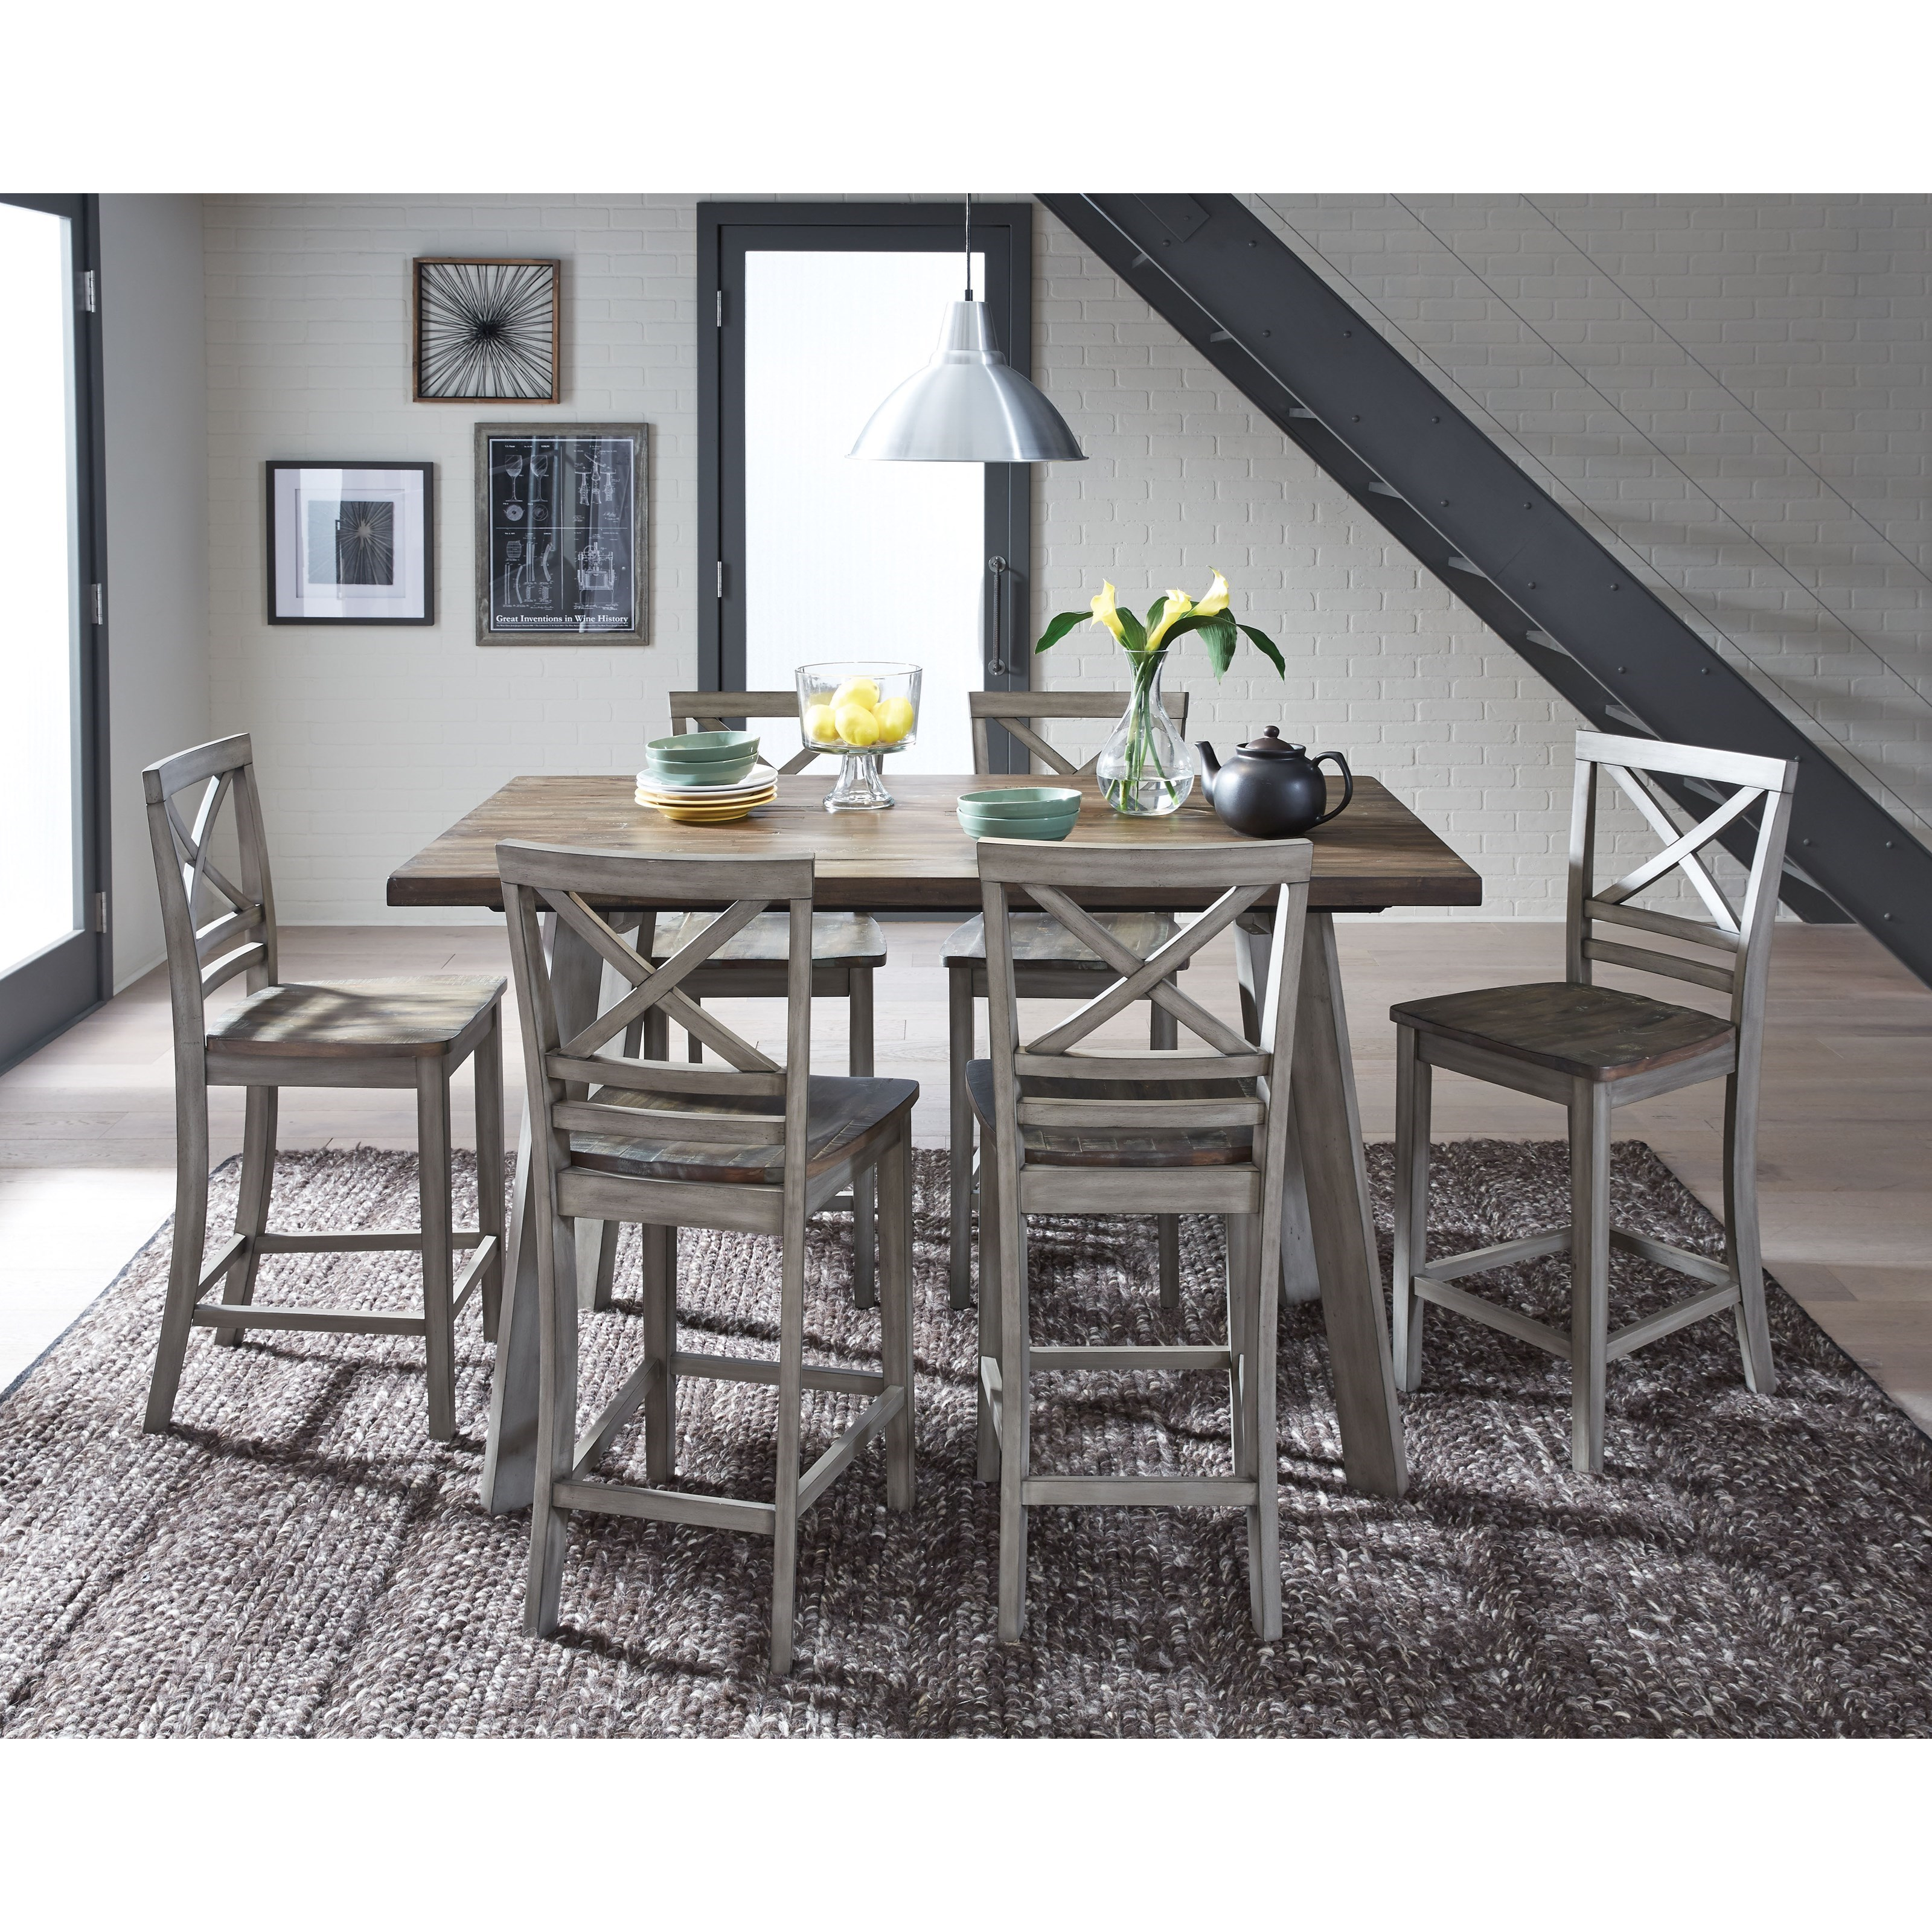 A Kitchen Fairhaven: Standard Furniture Fairhaven Rustic Table Set With Six